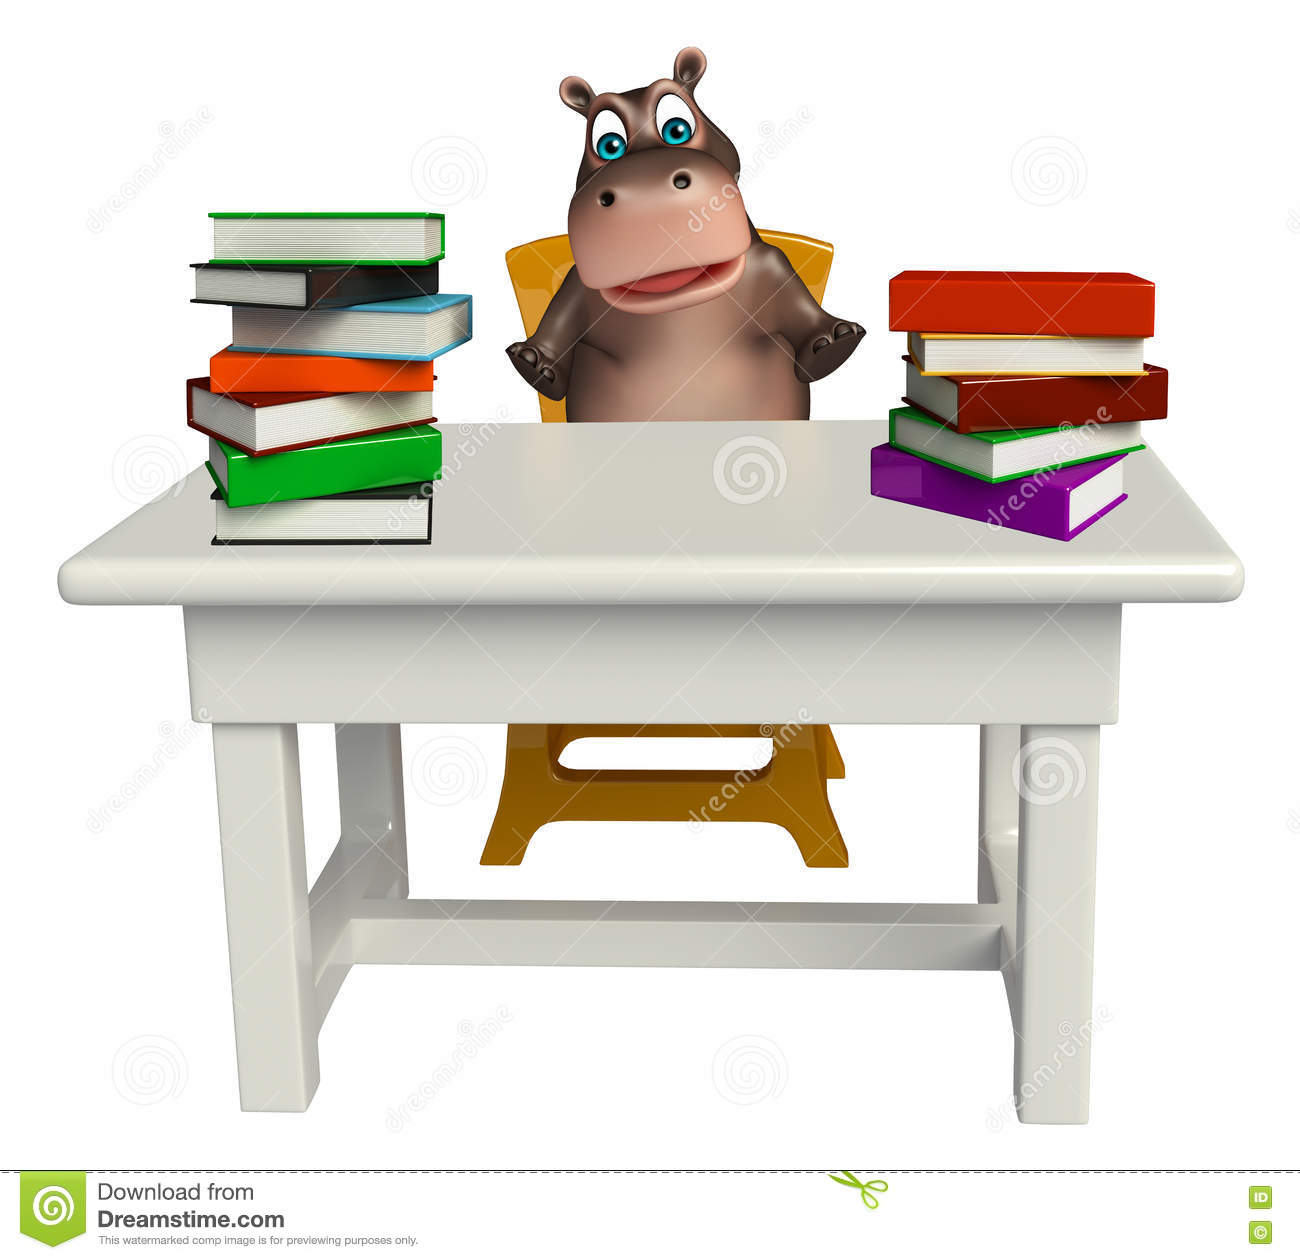 Hippo Table hippo cartoon character with book and table and chair stock